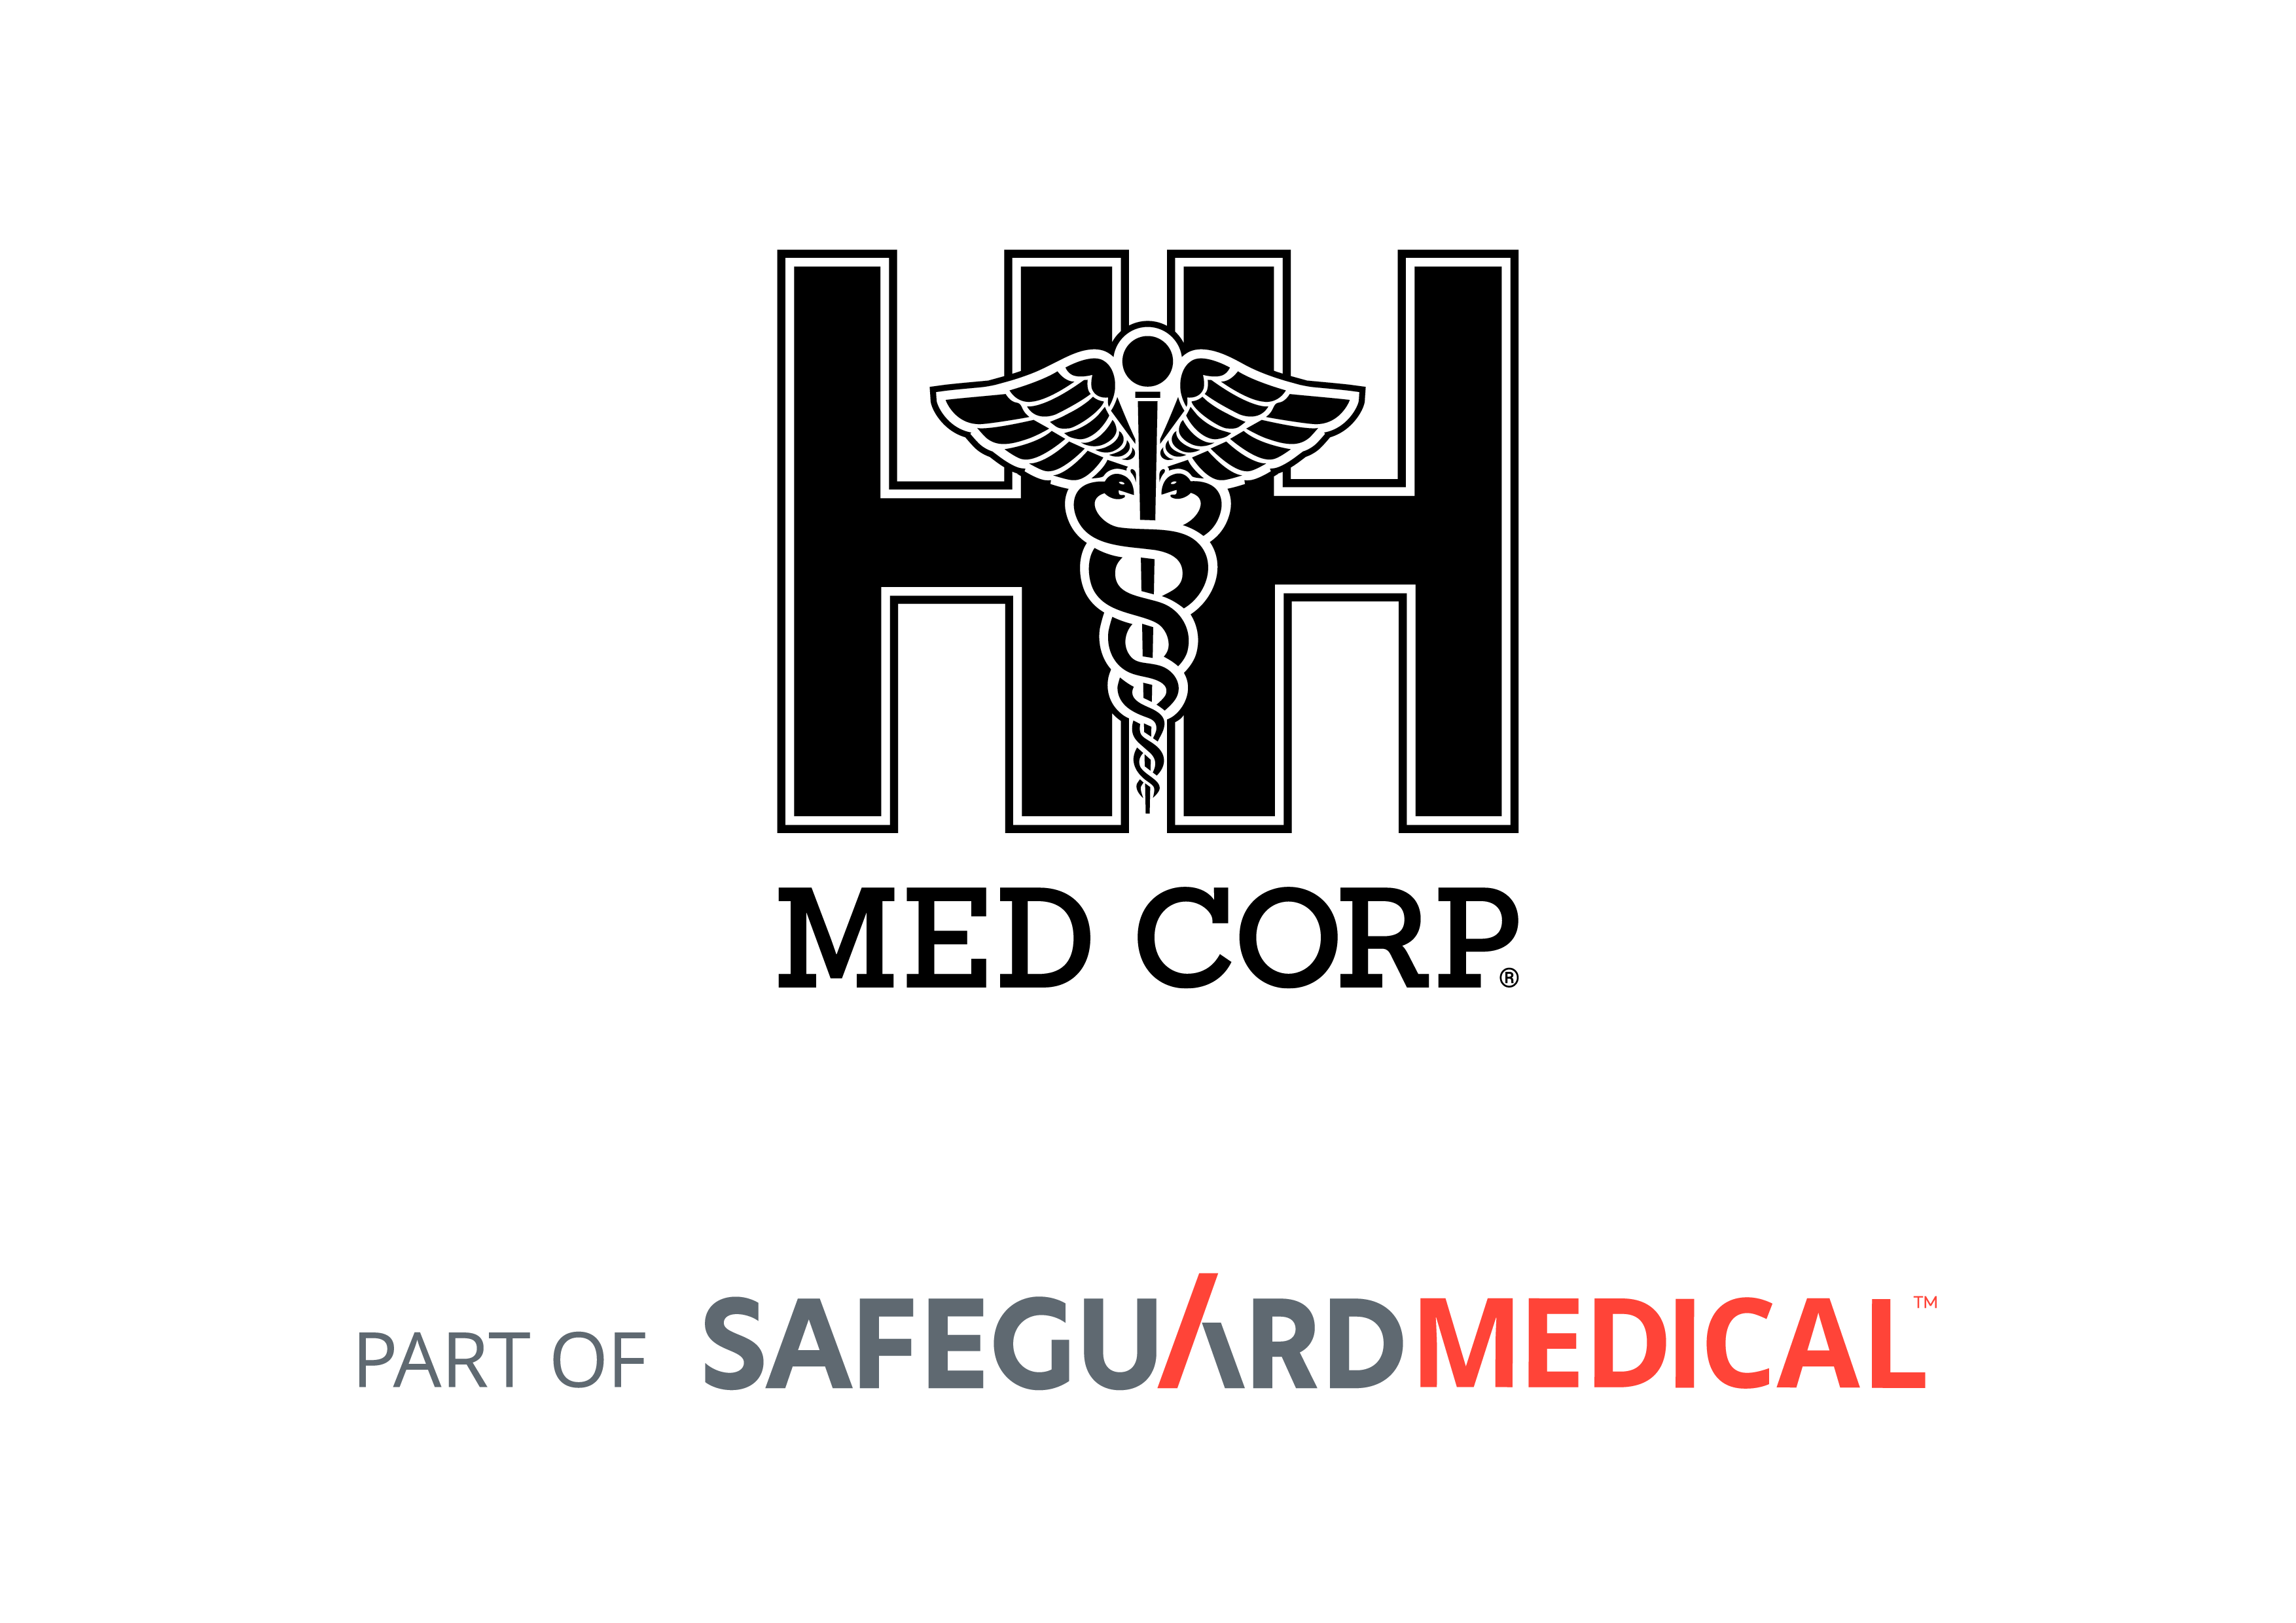 H&H Med Corp, a part of Safeguard Medical